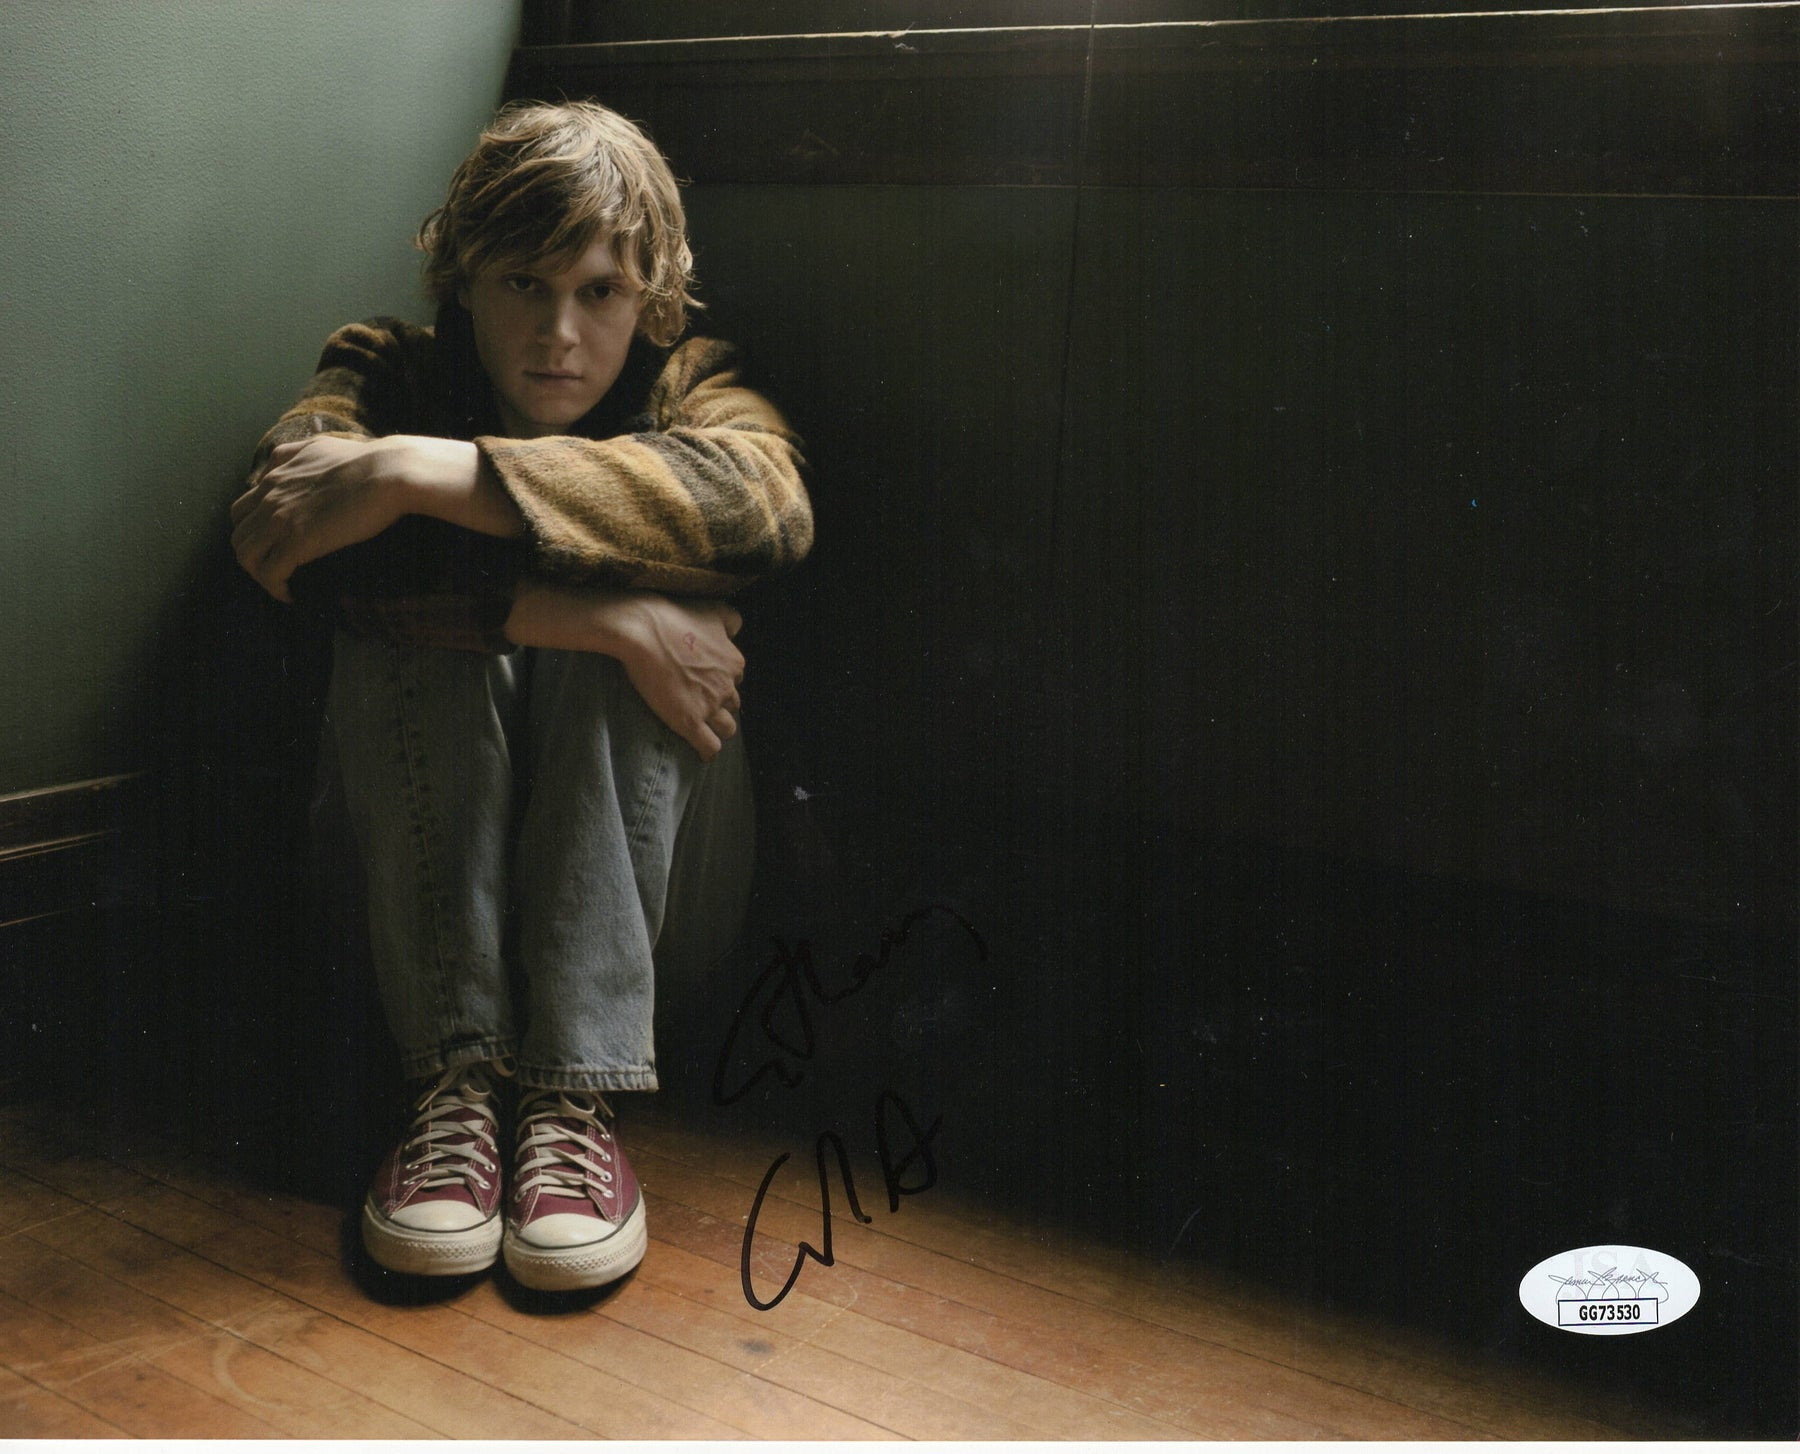 Evan Peters Autograph 8x10 Photo American Horror Story Signed JSA COA